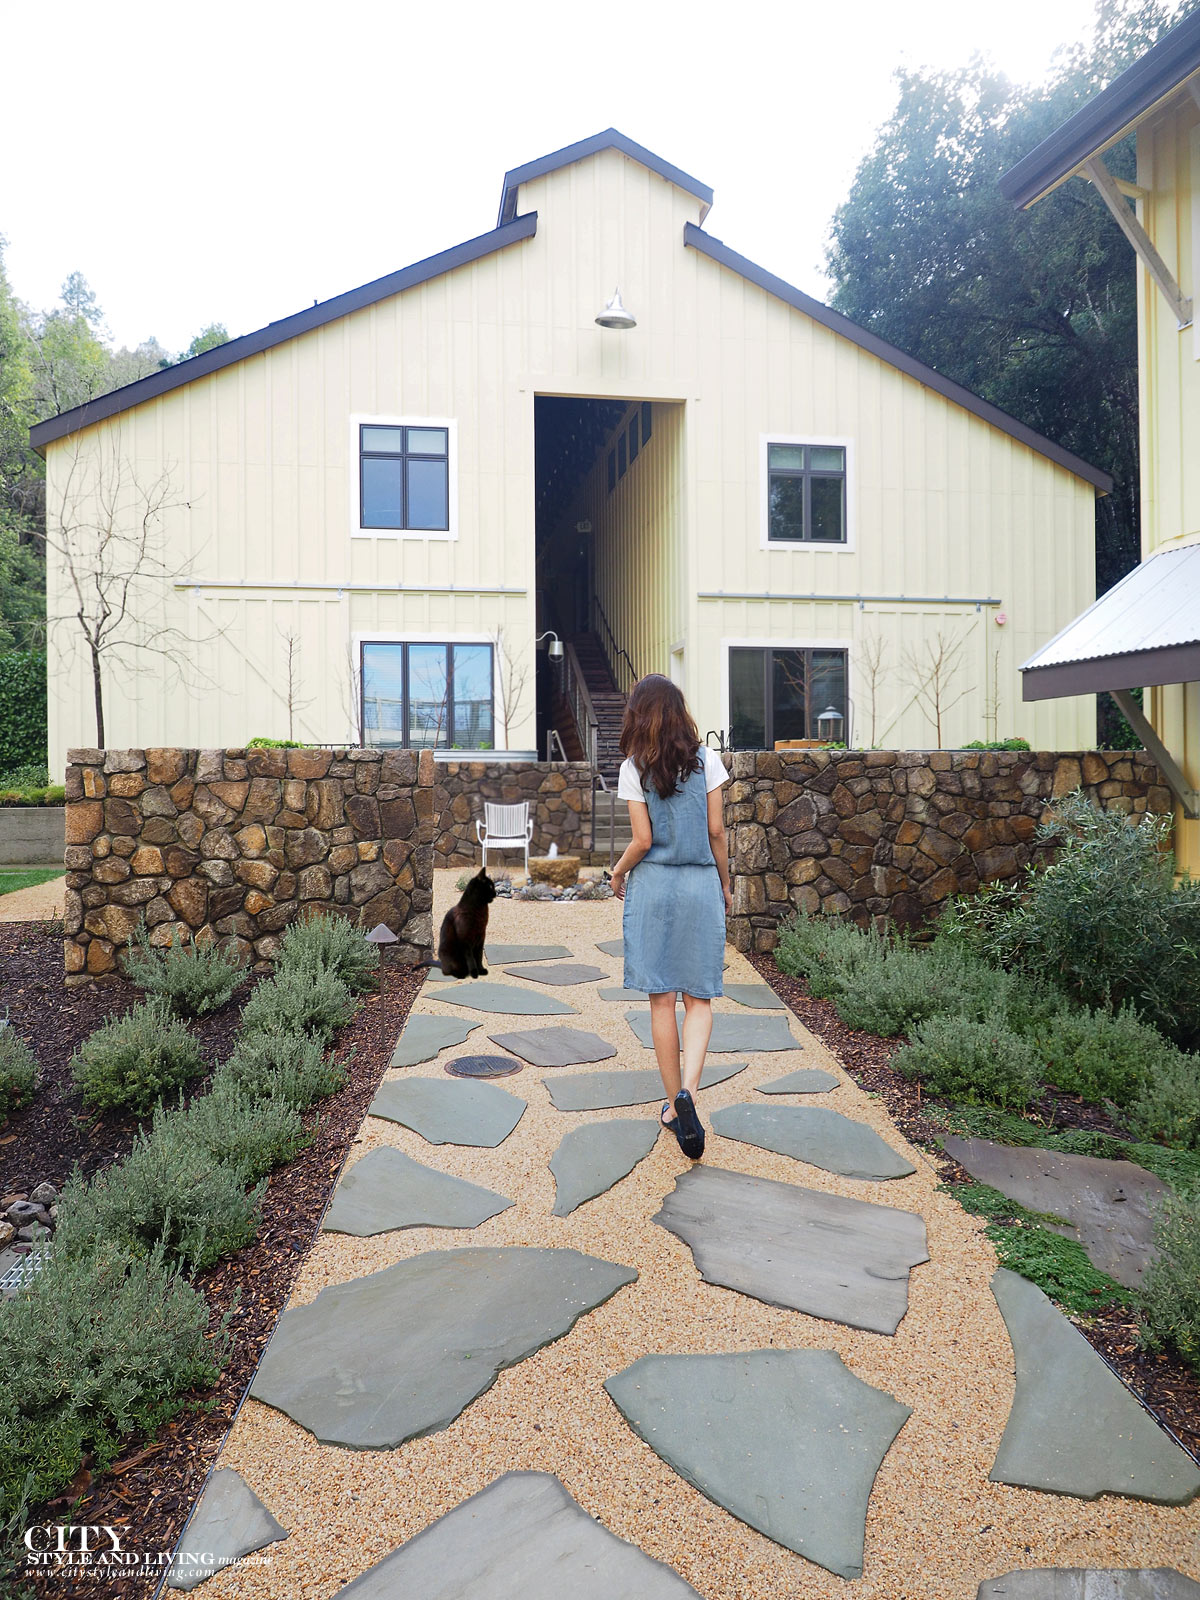 City Style and Living The Editors Notebook style blogger jean dress over a white tshirt and blue rockport ballet flats at farmhouse inn in sonoma